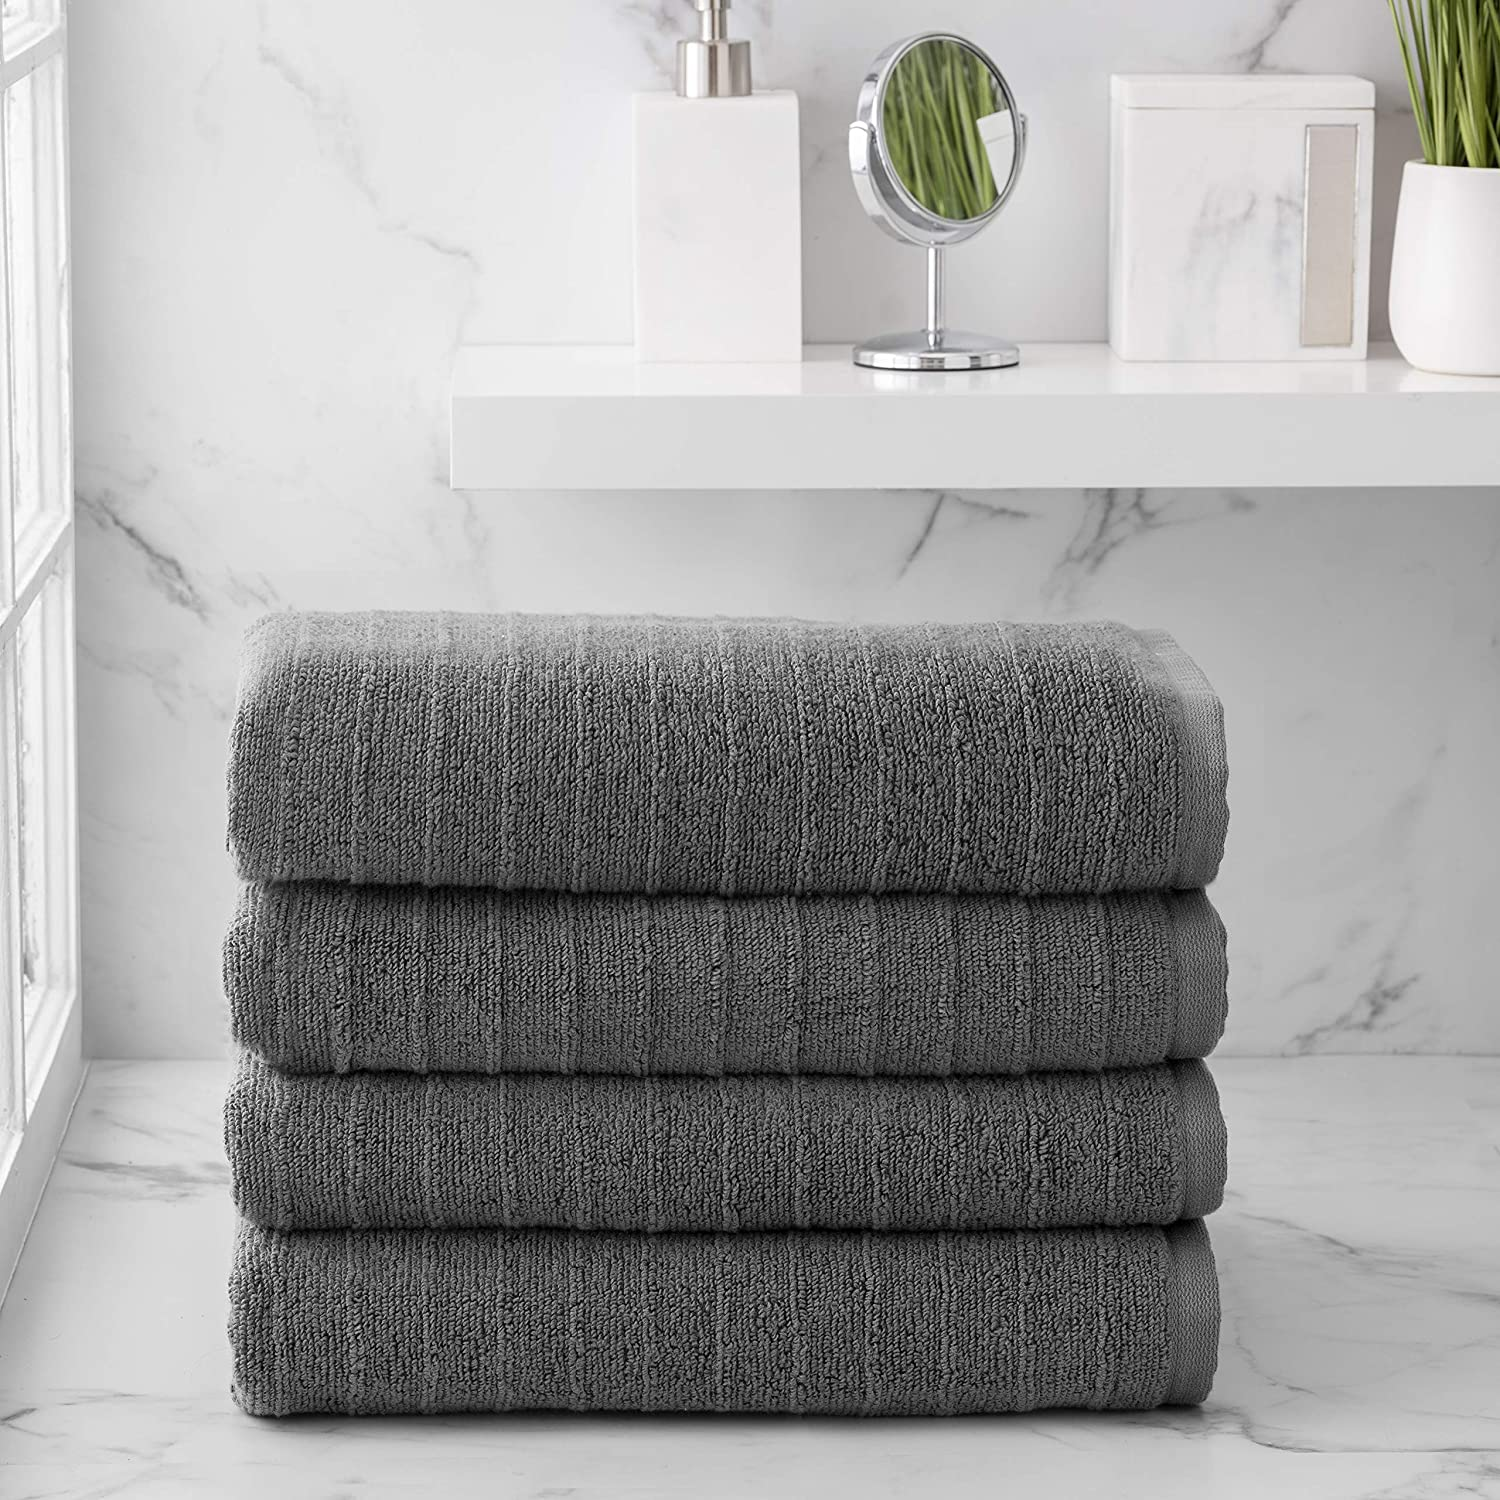 Welhome James 100% Cotton 4 Piece Bath Towels | Charcoal Grey | Stripe Textured | Supersoft & Durable | Highly Absorbent & Quick Dry | Ideal for Everyday Use | 450 GSM | Machine Washable